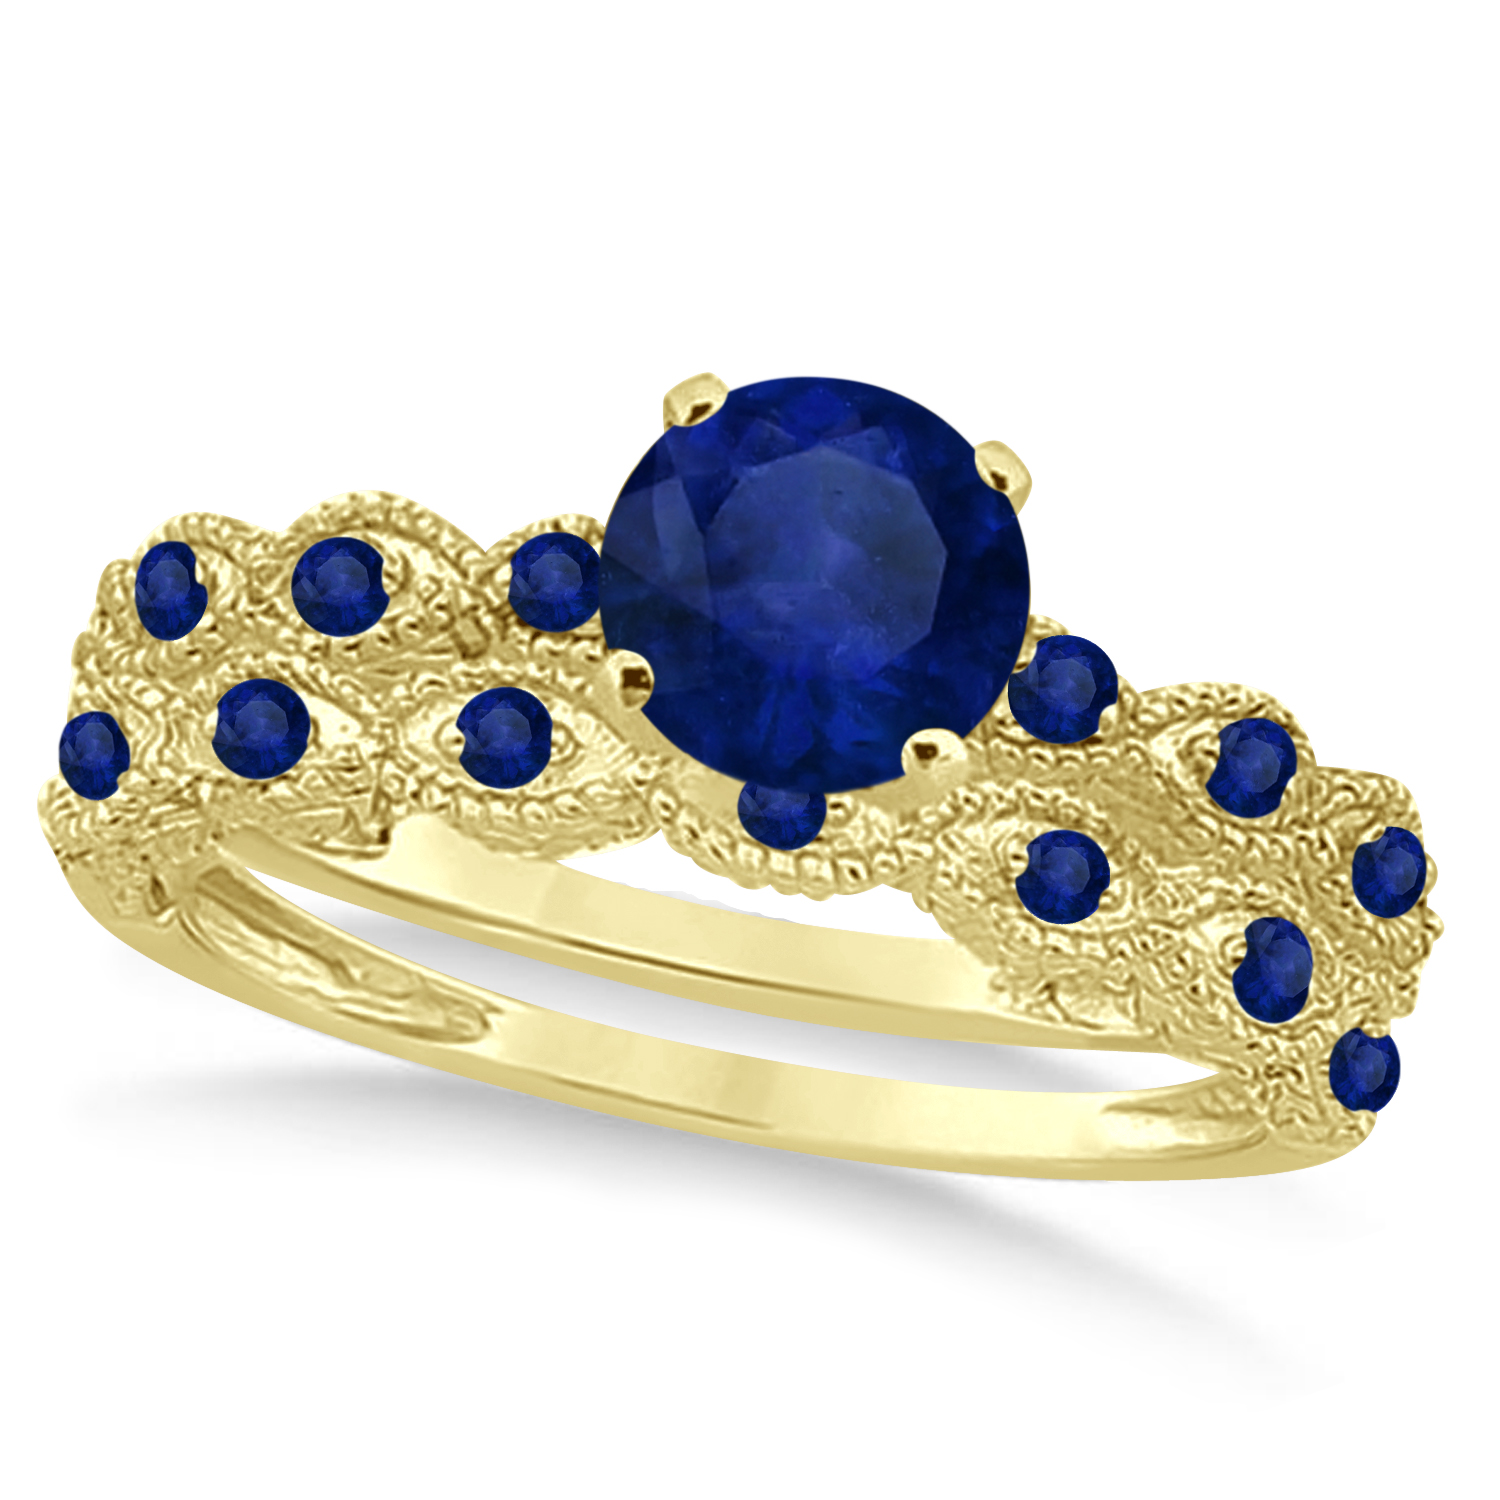 Vintage Blue Sapphire Engagement Ring Bridal Set 14k Yellow Gold 1.36ct